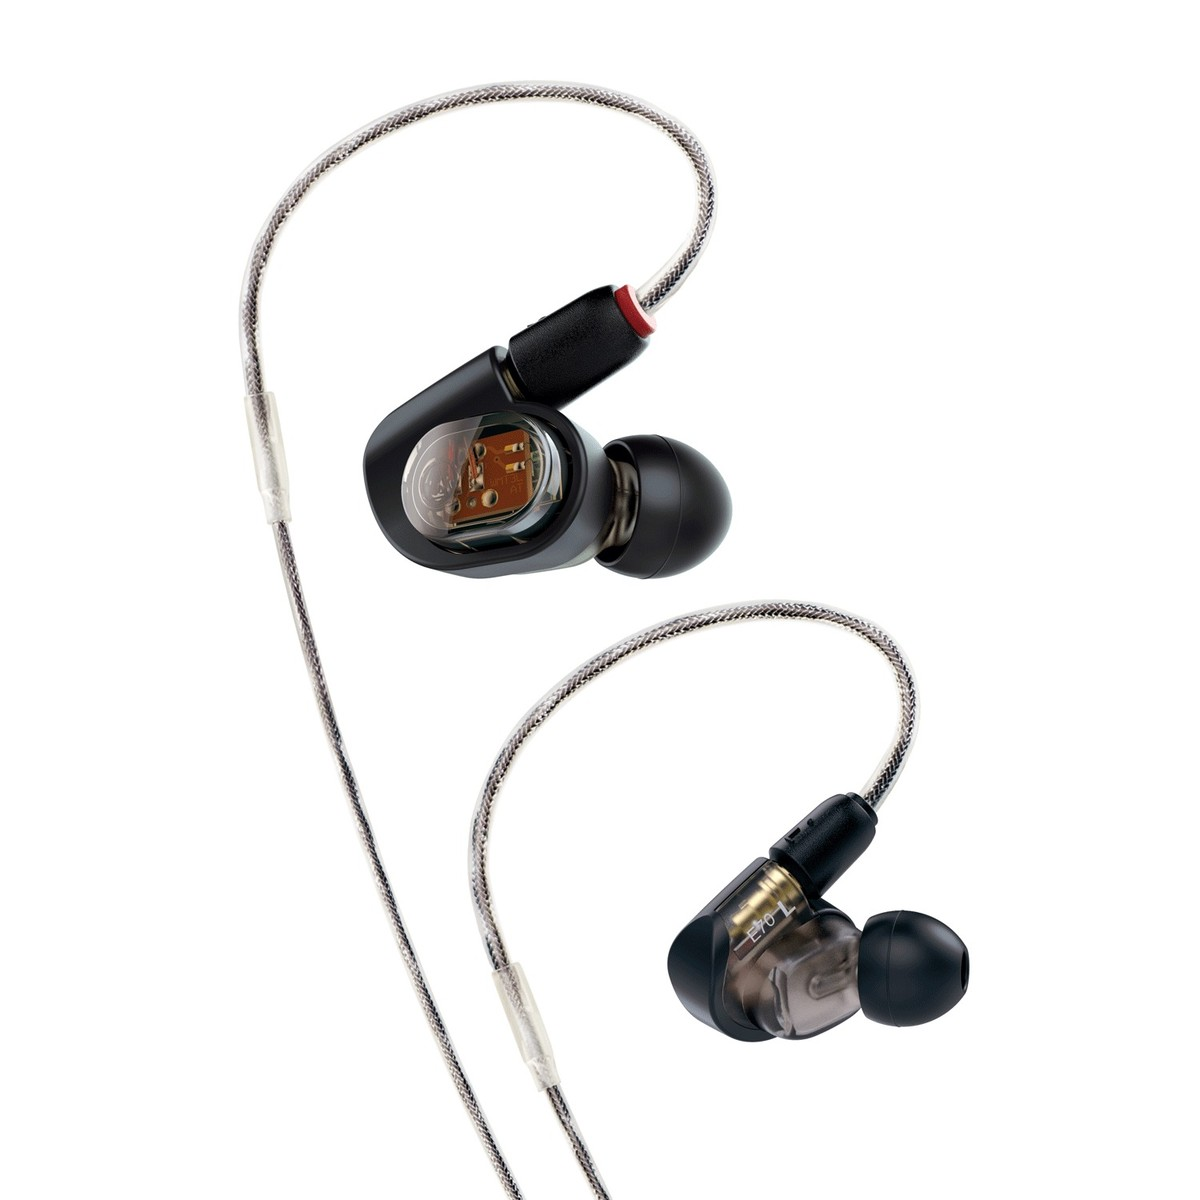 audio technica ath e70 professional in ear monitor earphones at gear4music. Black Bedroom Furniture Sets. Home Design Ideas